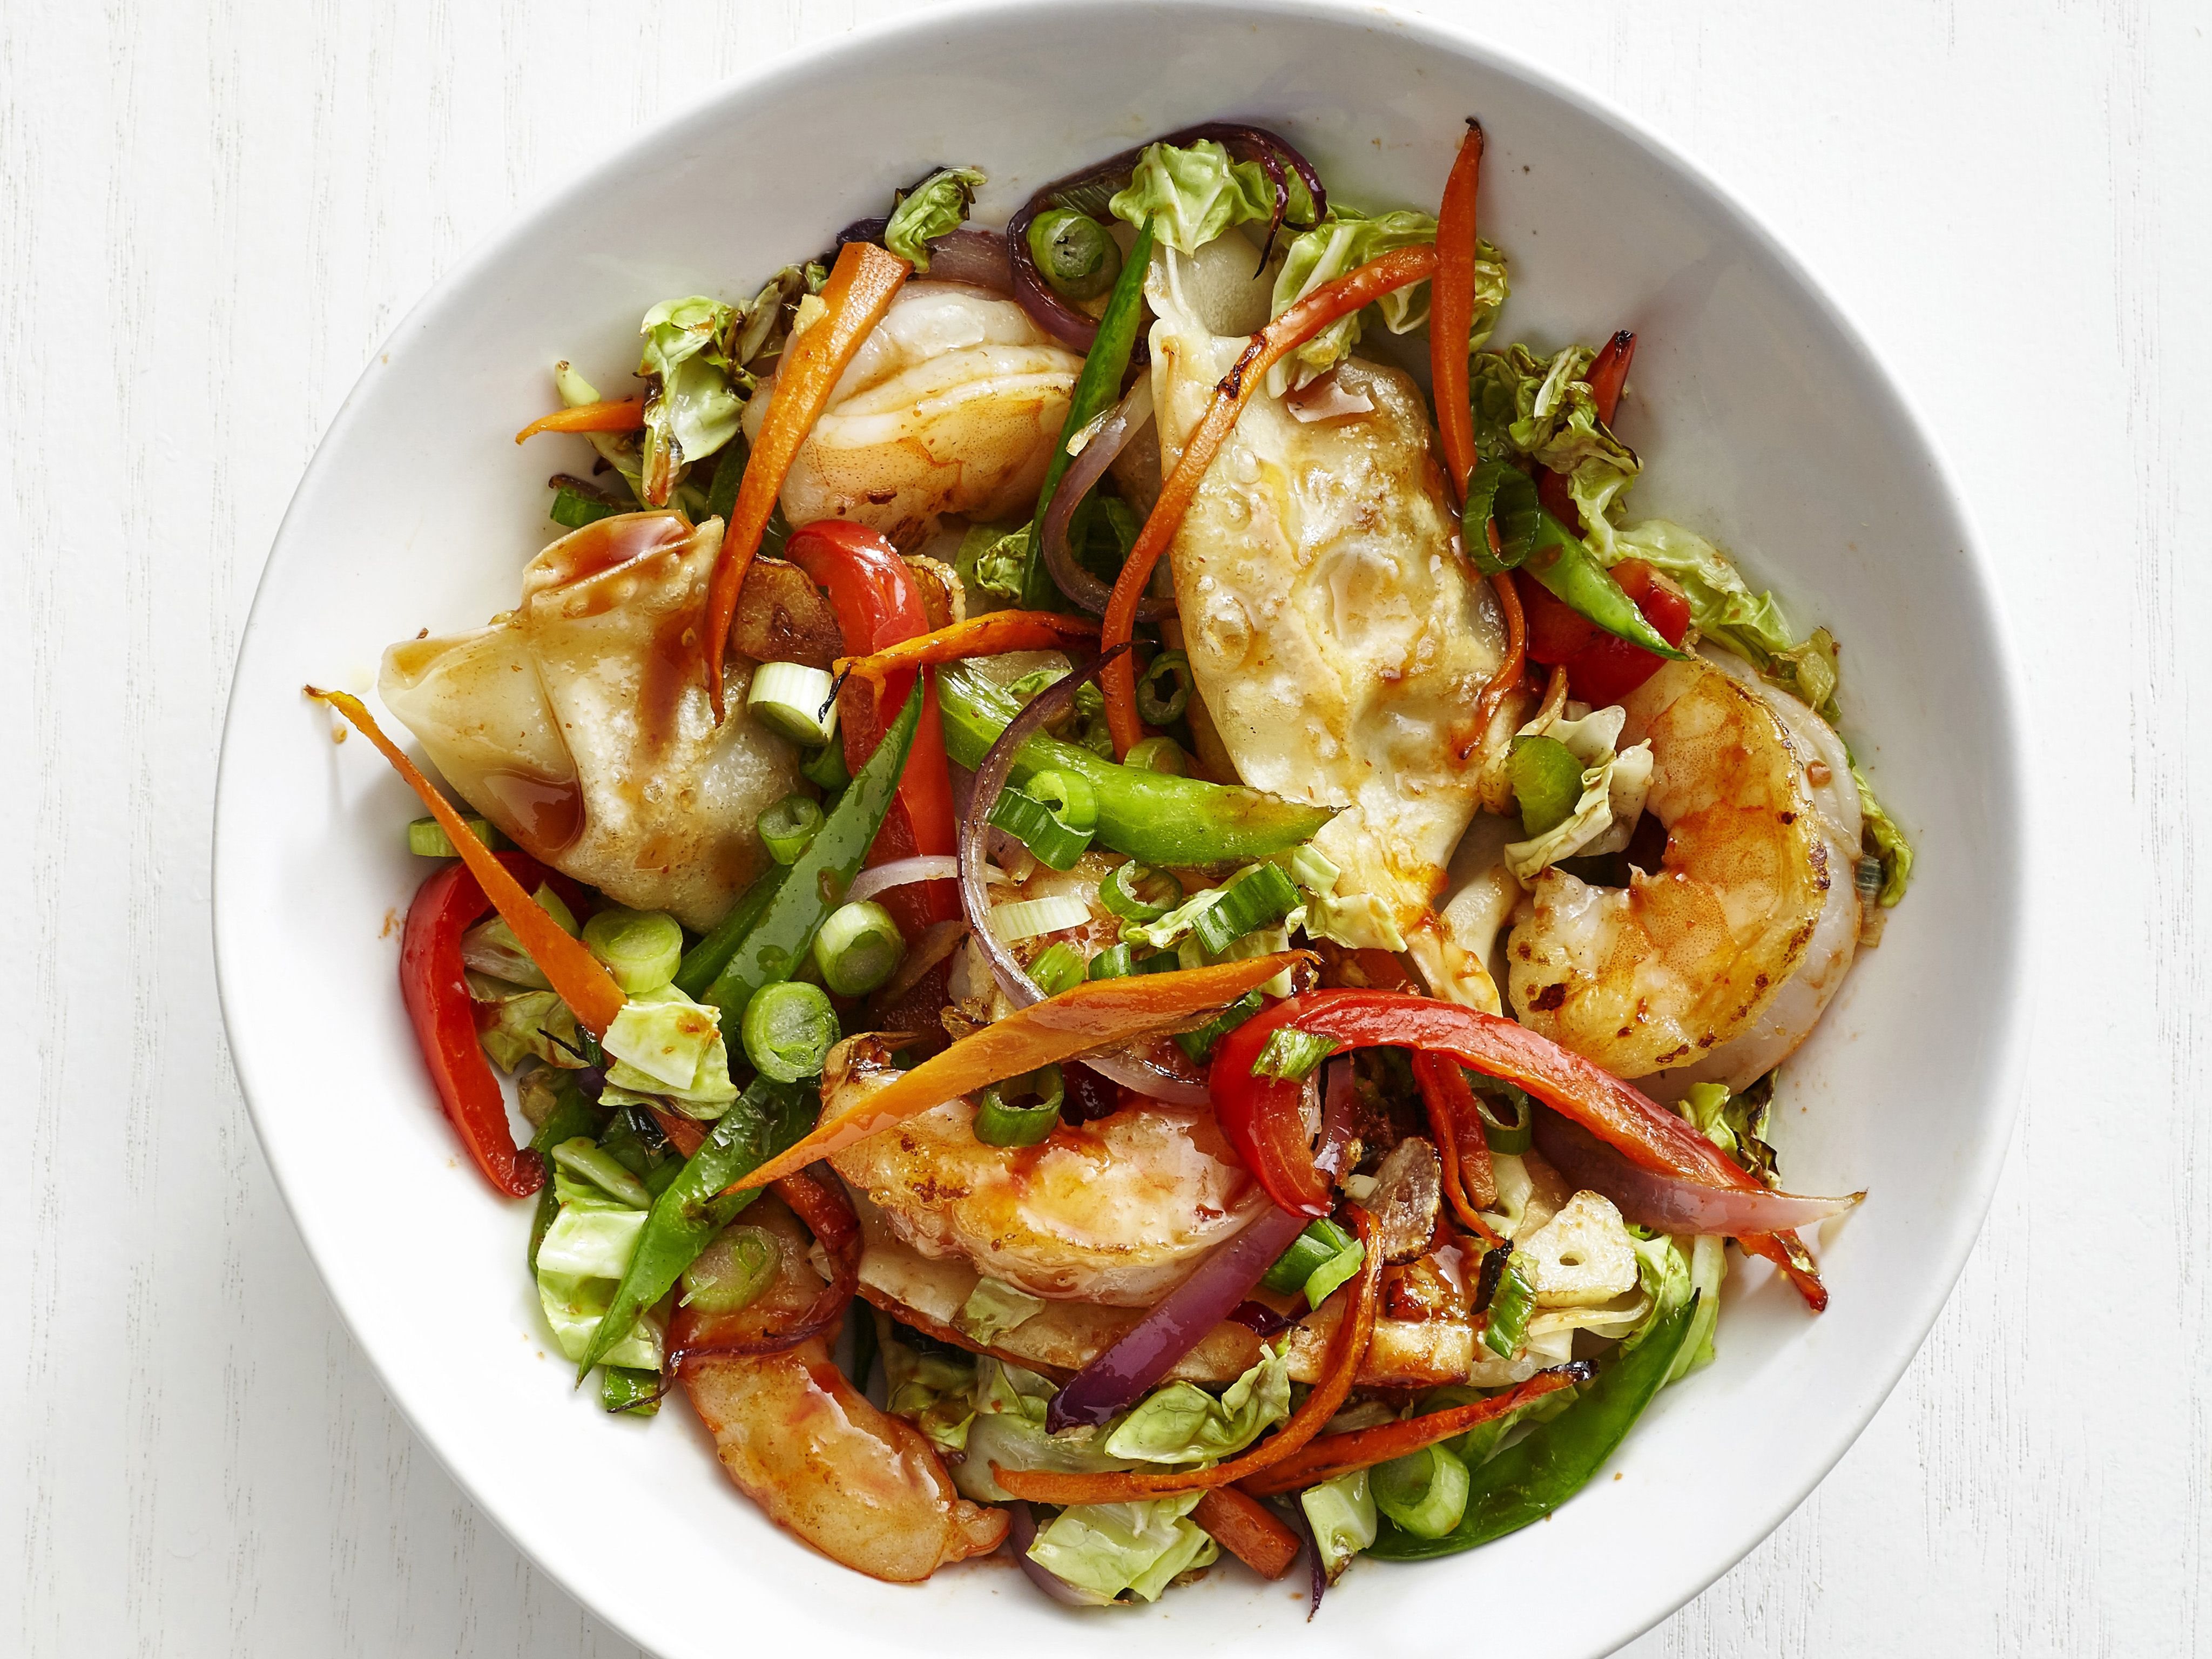 Shrimp and dumpling stir fry recipe stir fry kitchens and recipes dishes shrimp and dumpling stir fry recipe from food network forumfinder